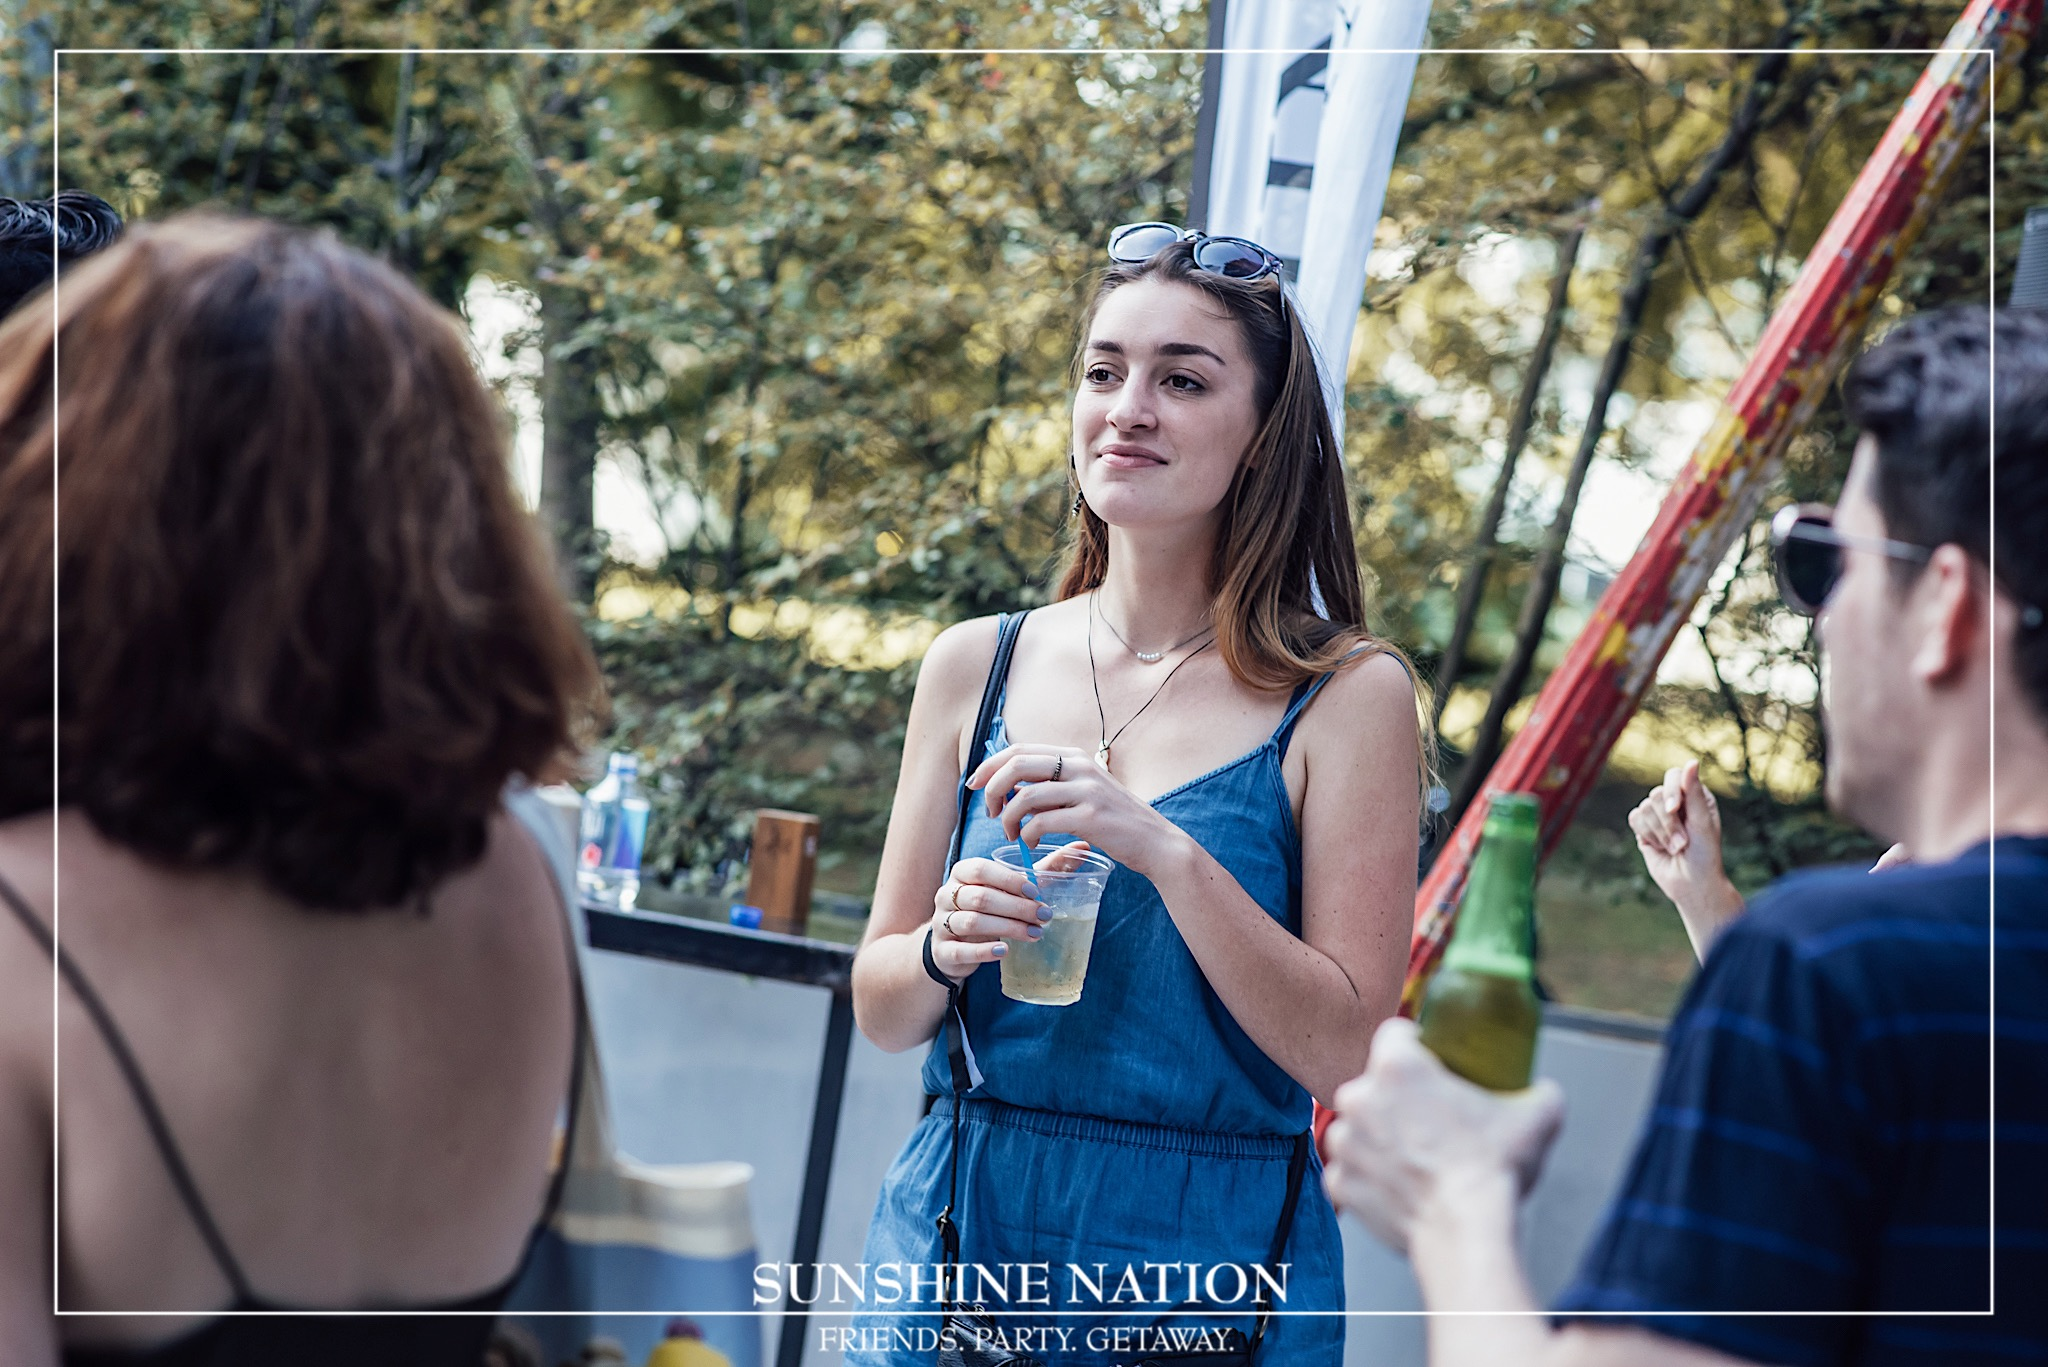 18092016_SunshineNation_Colossal106_Watermarked.jpg